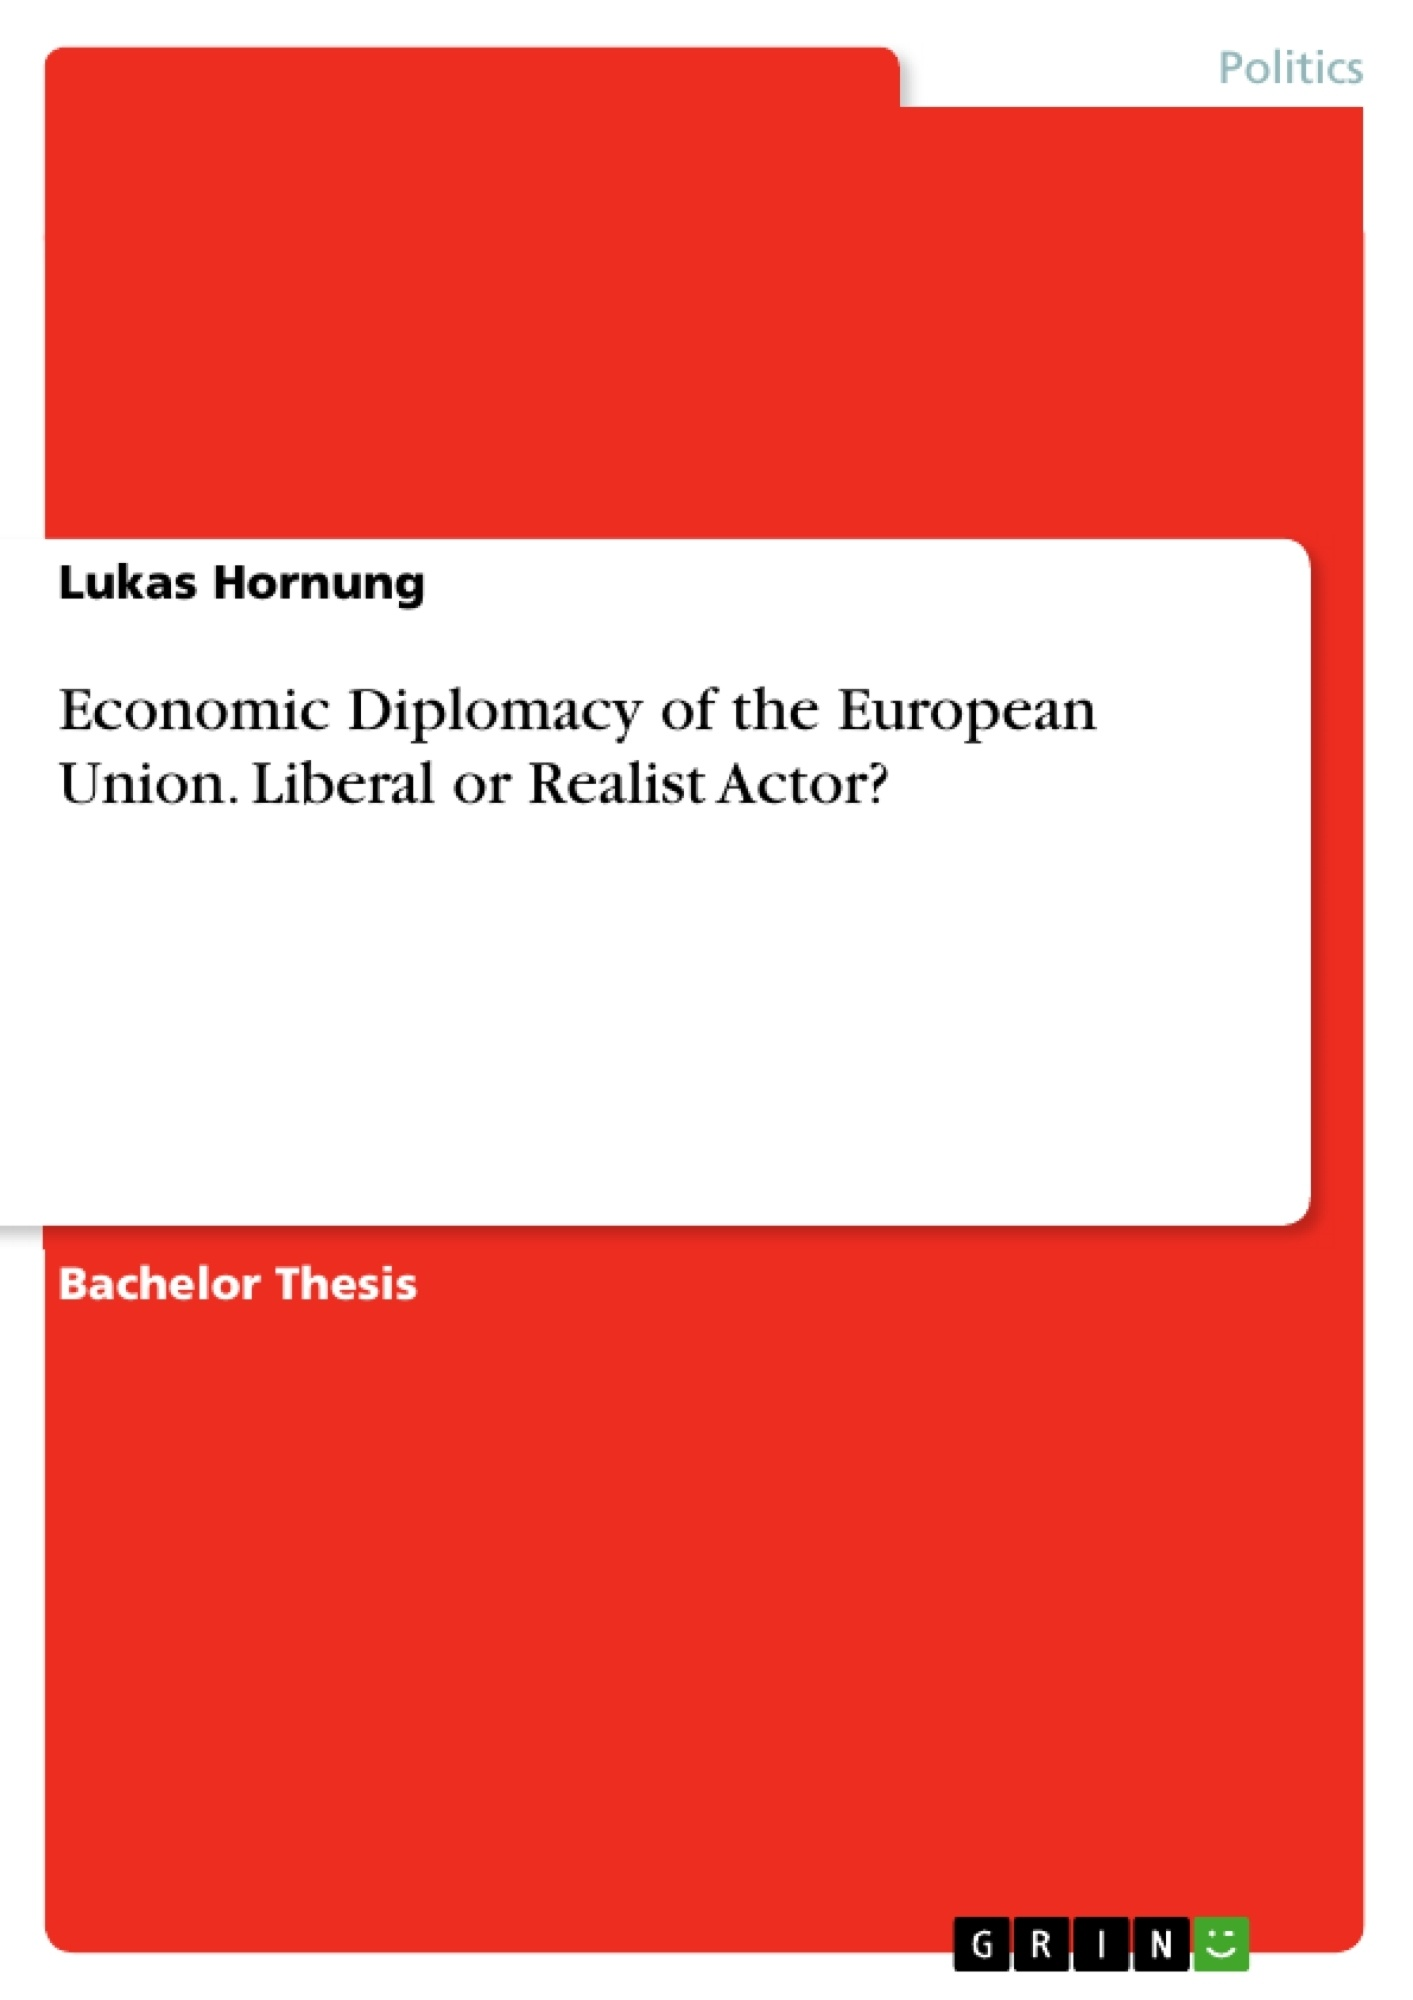 Title: Economic Diplomacy of the European Union. Liberal or Realist Actor?